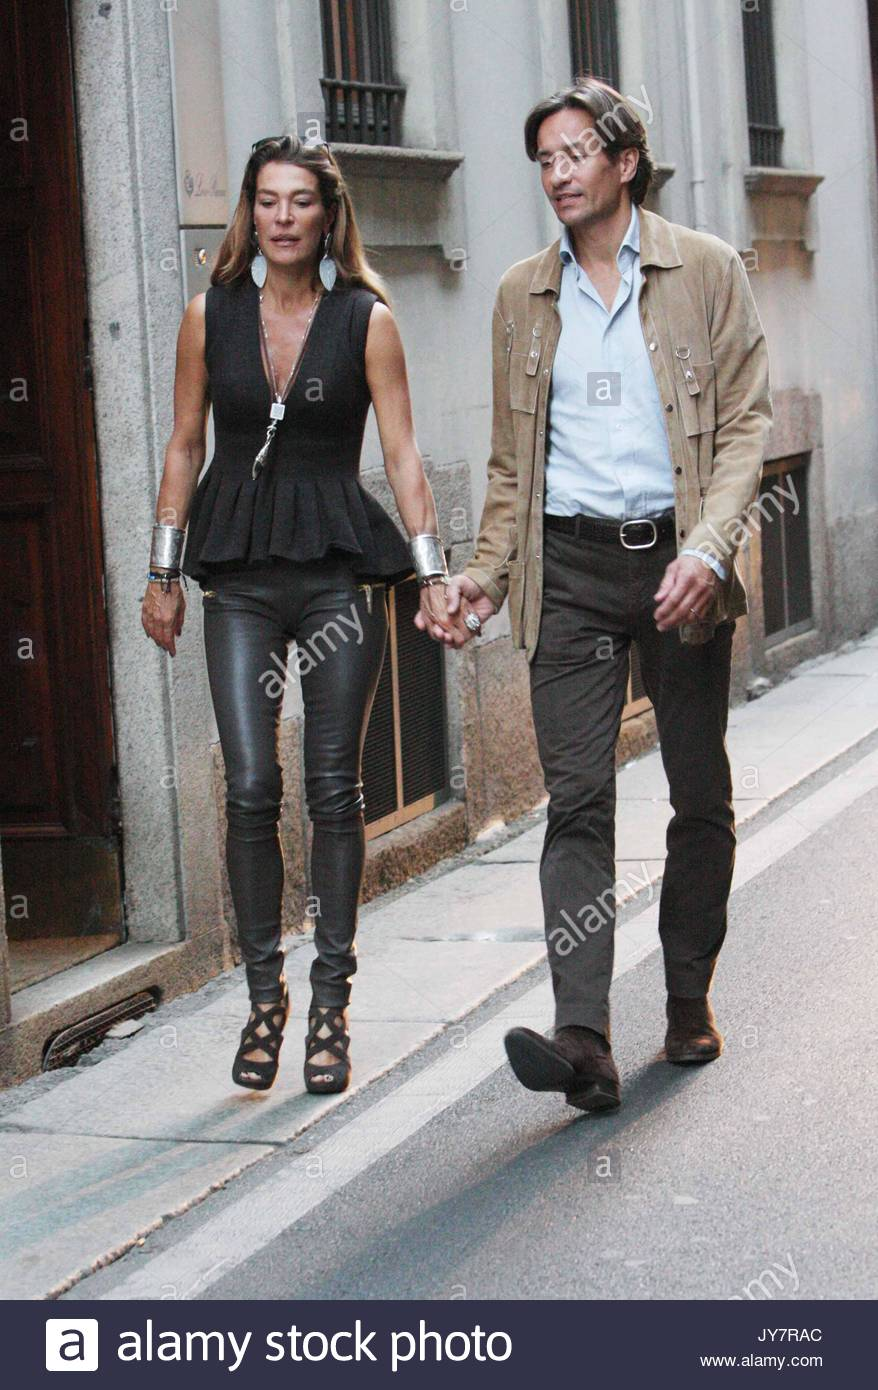 Fiona Swarovski And Karl Heinz Grasser Fiona Swarovski And Karl Heinz Grasser Out And About In Milan